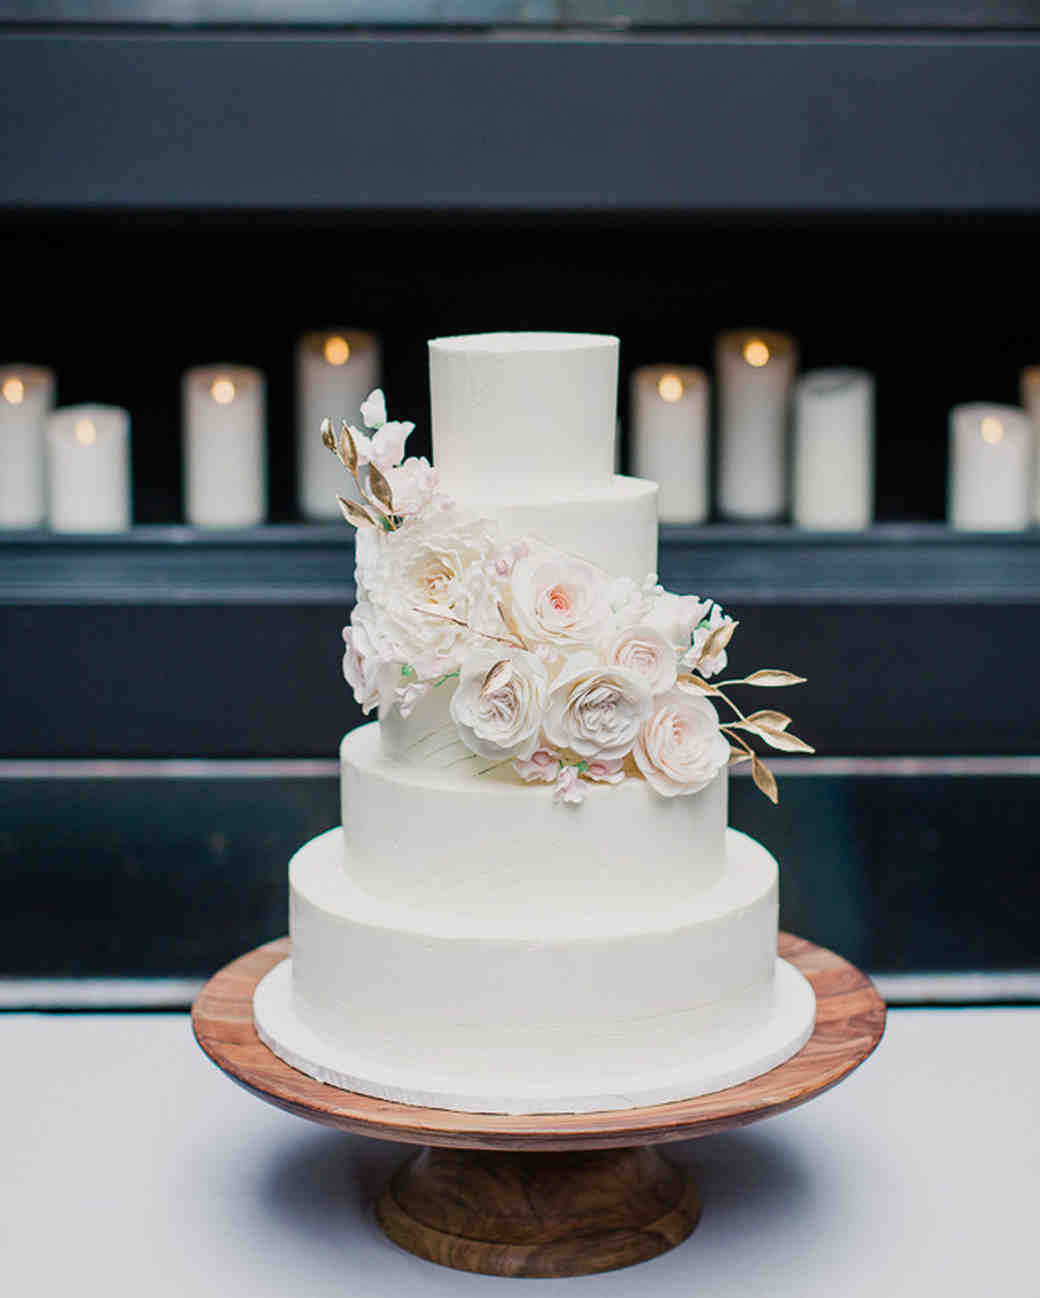 spring wedding cakes that are almost too pretty eat cheap wedding cakes Spring Wedding Cakes That Are Almost Too Pretty to Eat Martha Stewart Weddings